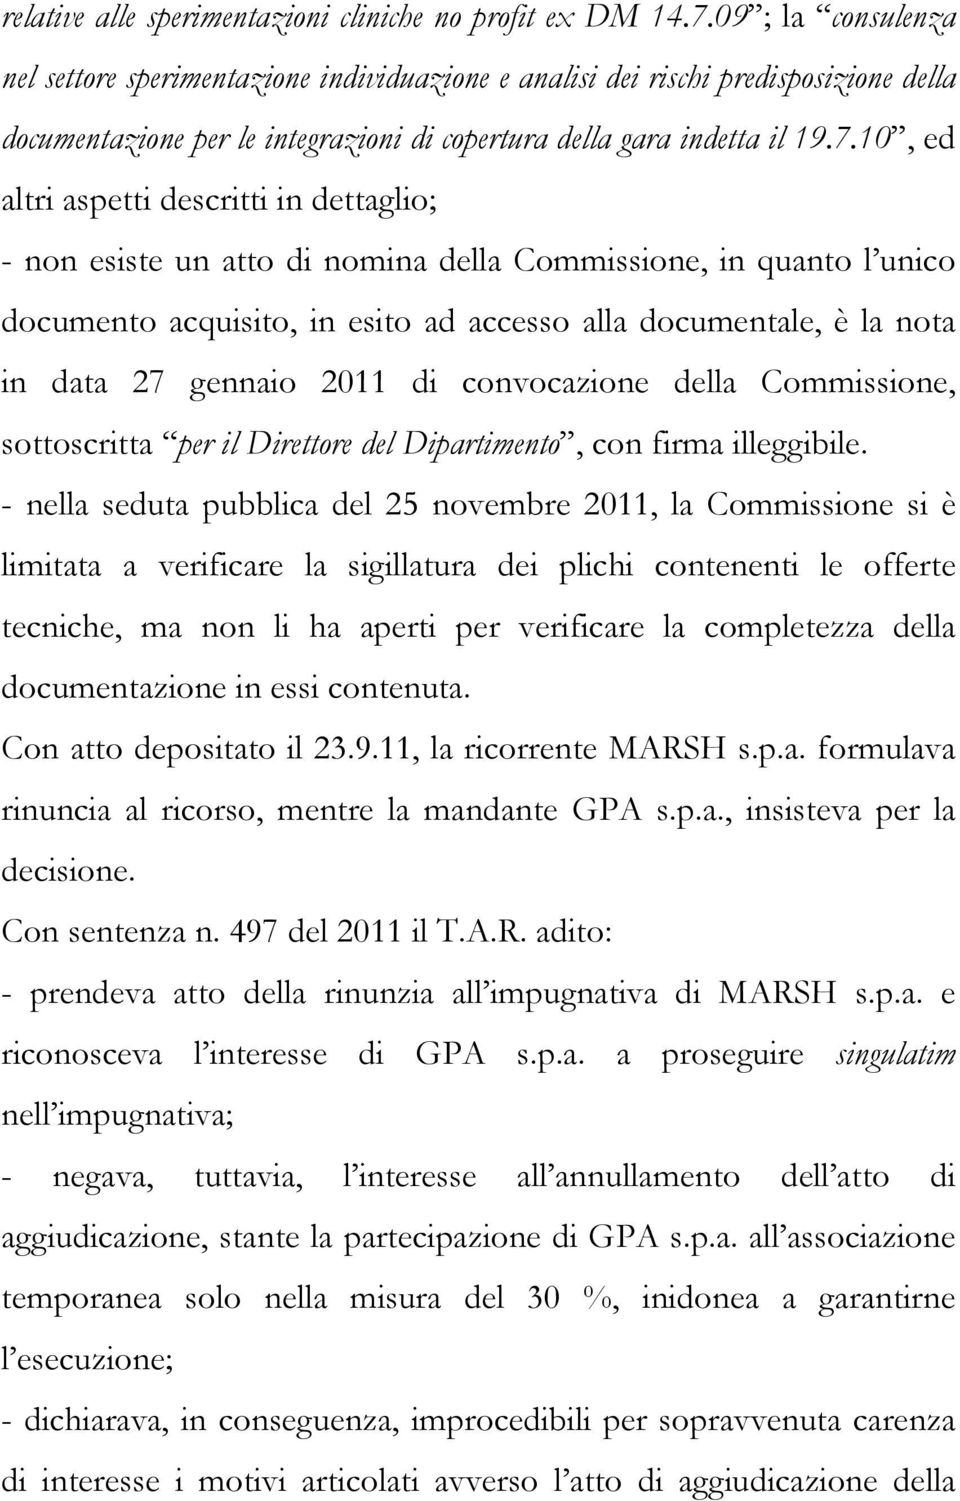 10, ed altri aspetti descritti in dettaglio; - non esiste un atto di nomina della Commissione, in quanto l unico documento acquisito, in esito ad accesso alla documentale, è la nota in data 27